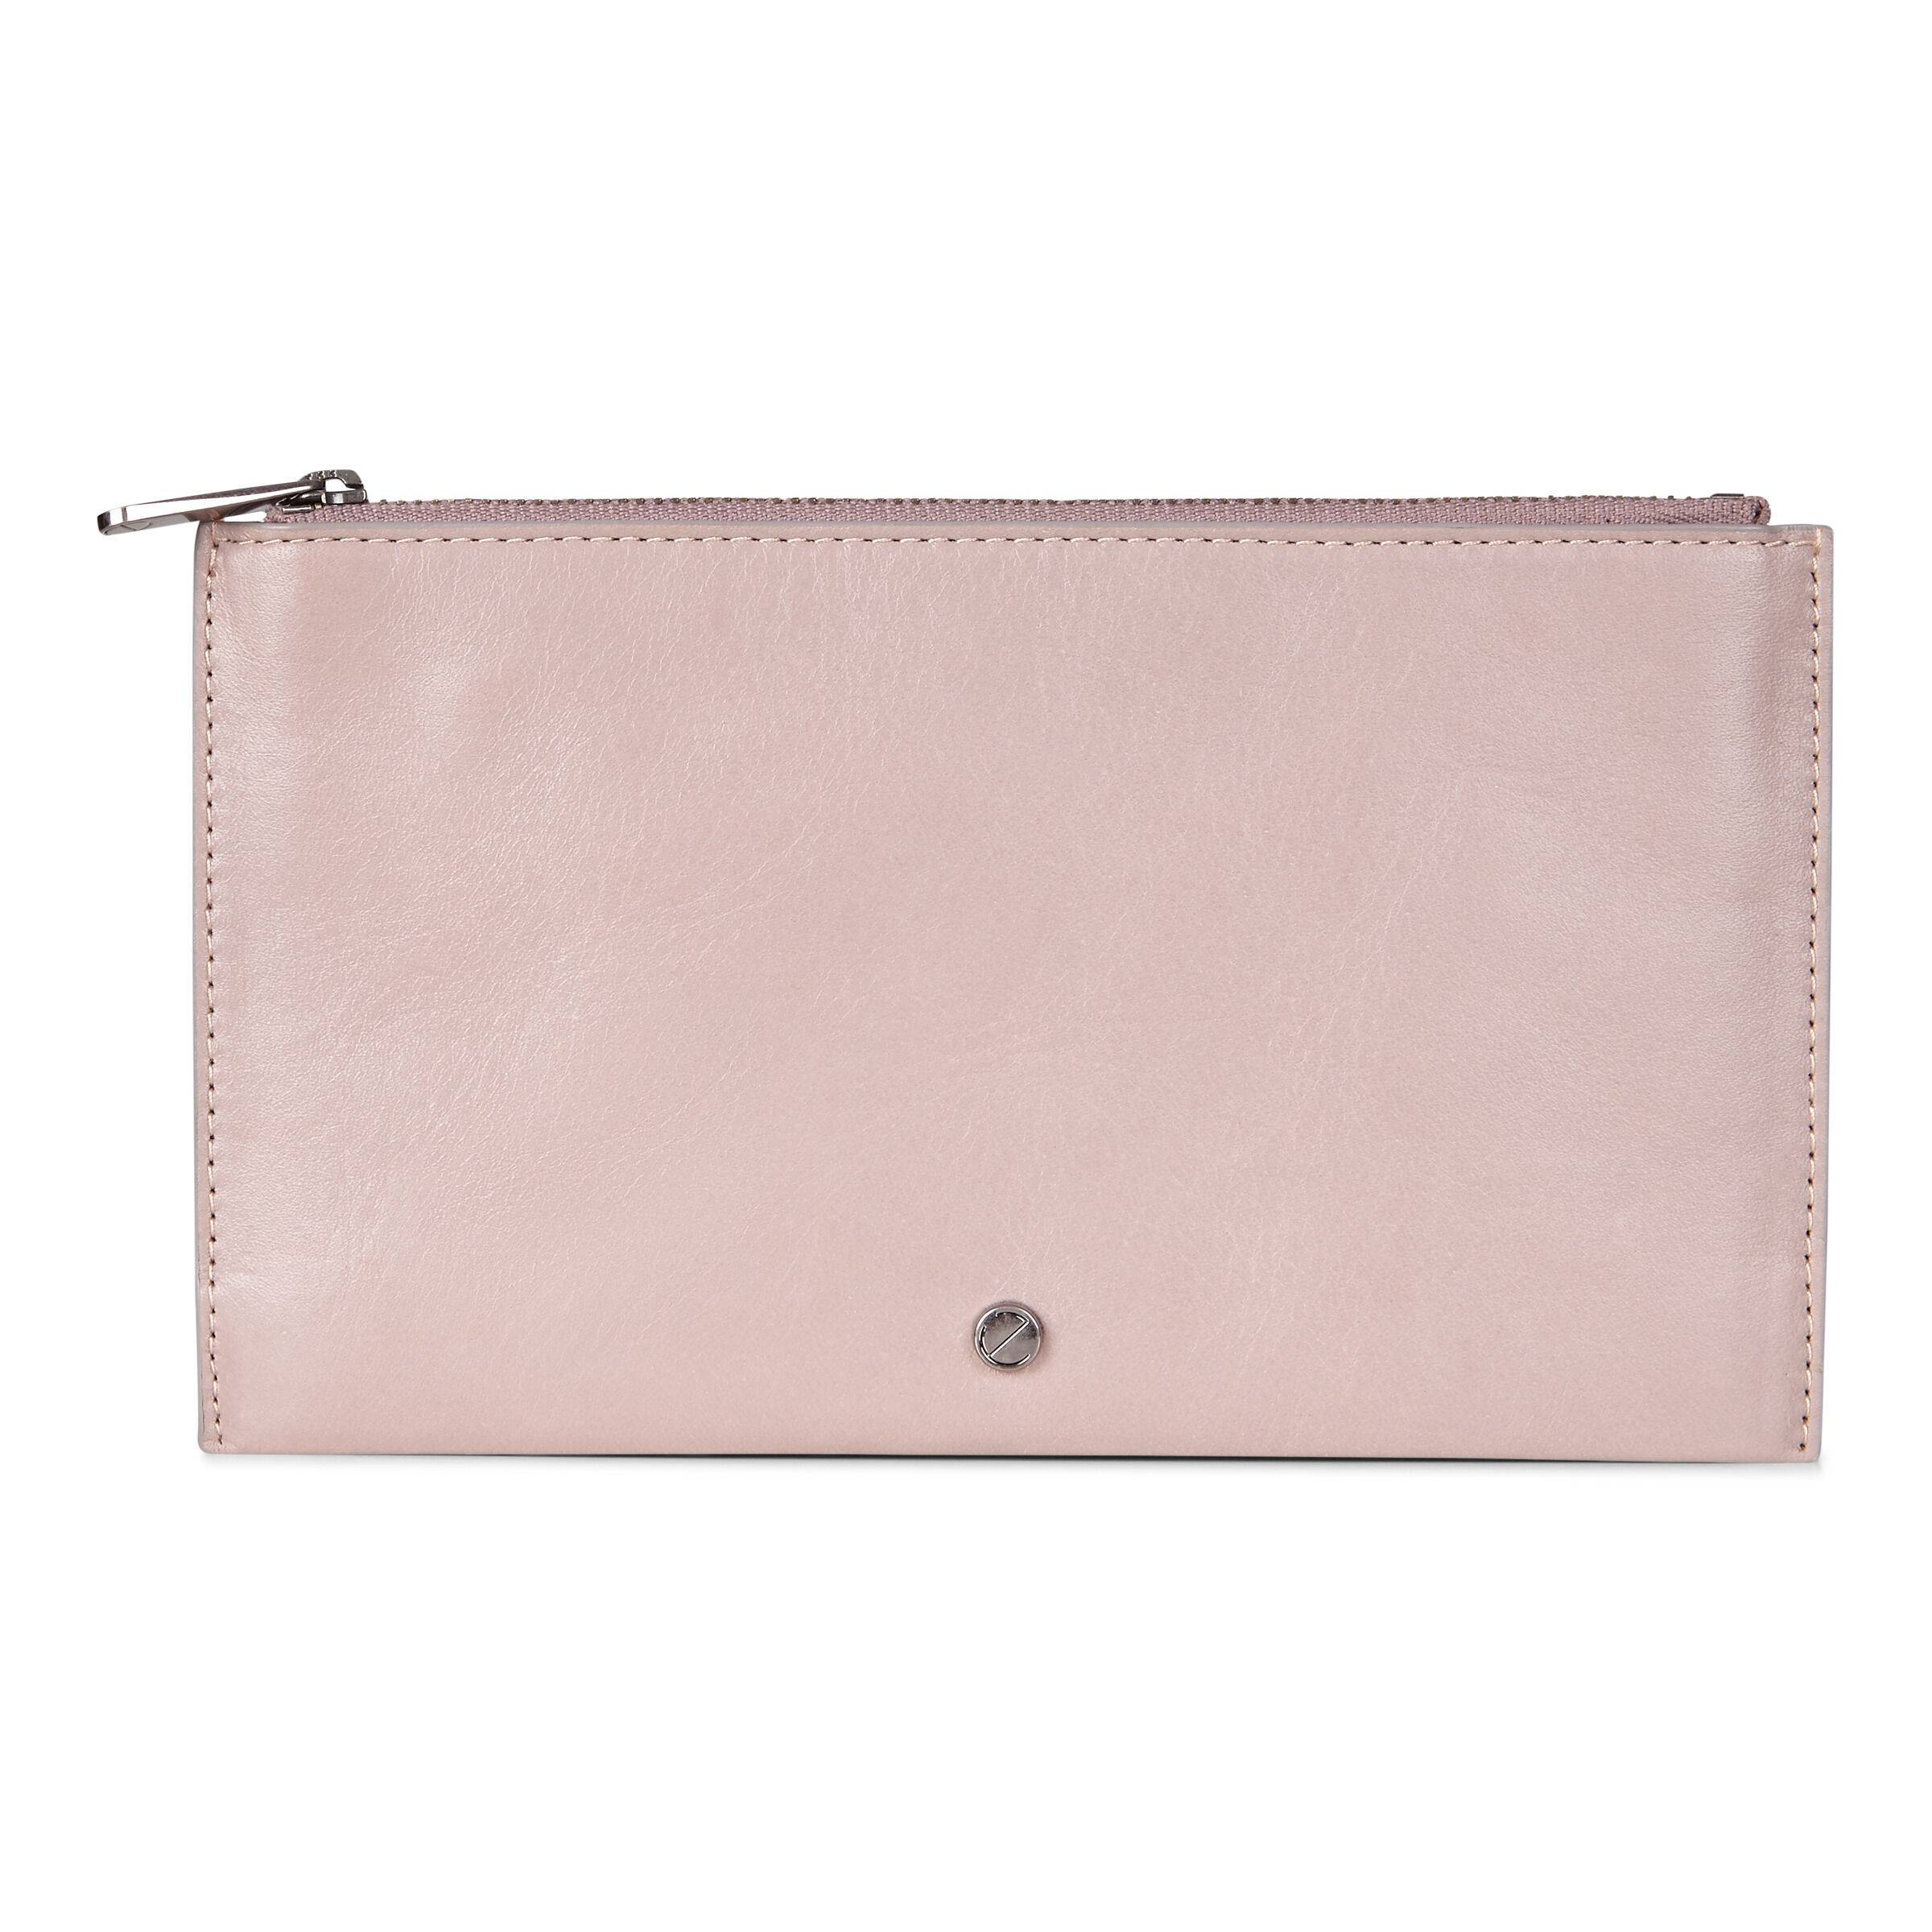 ECCO Sculptured Pouch Wallet: One Size - Grey Rose